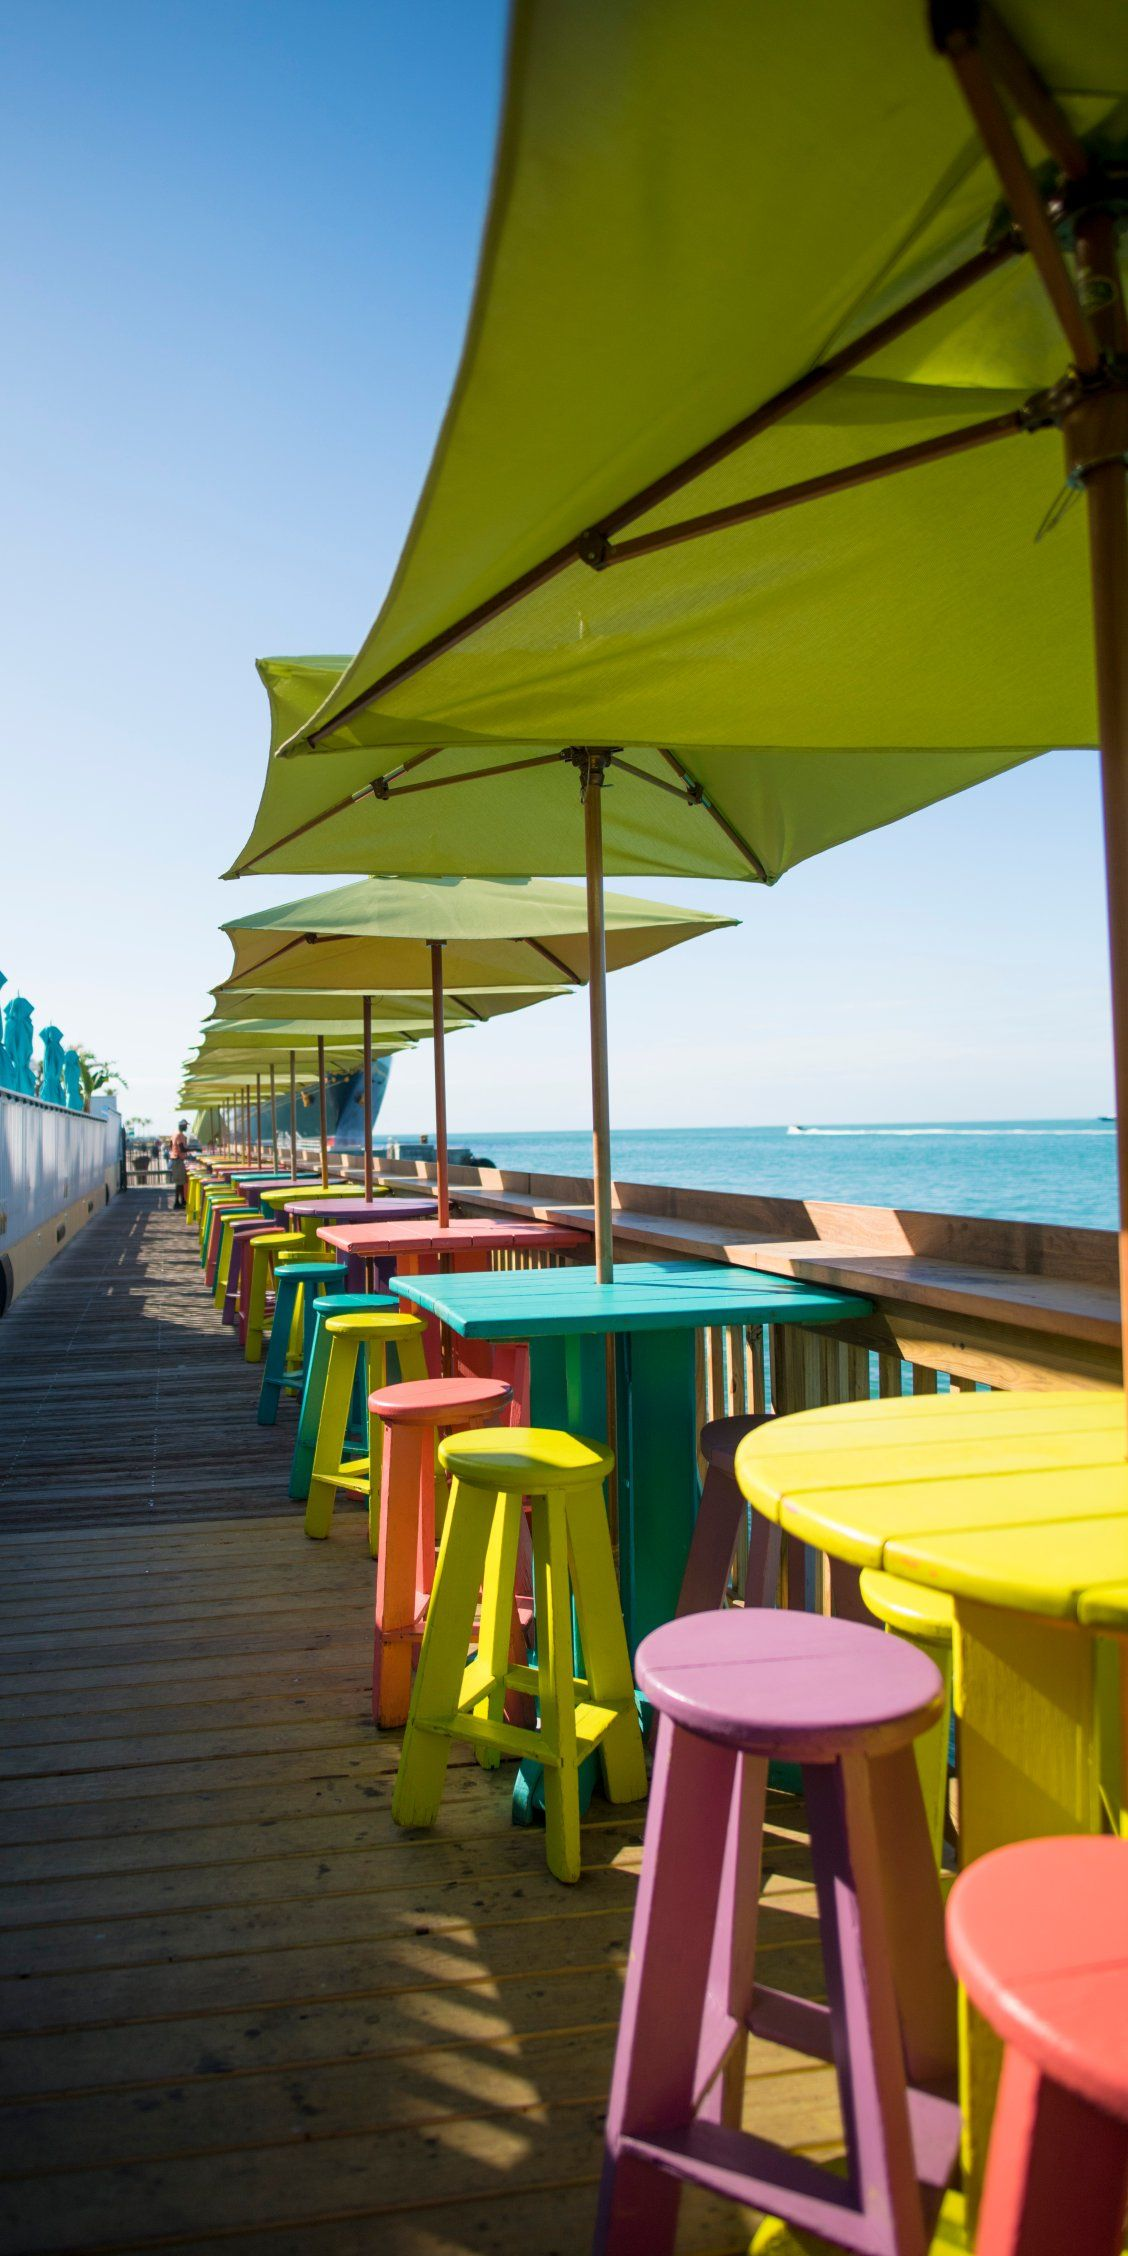 Key West Florida The Southernmost City In The United States Is